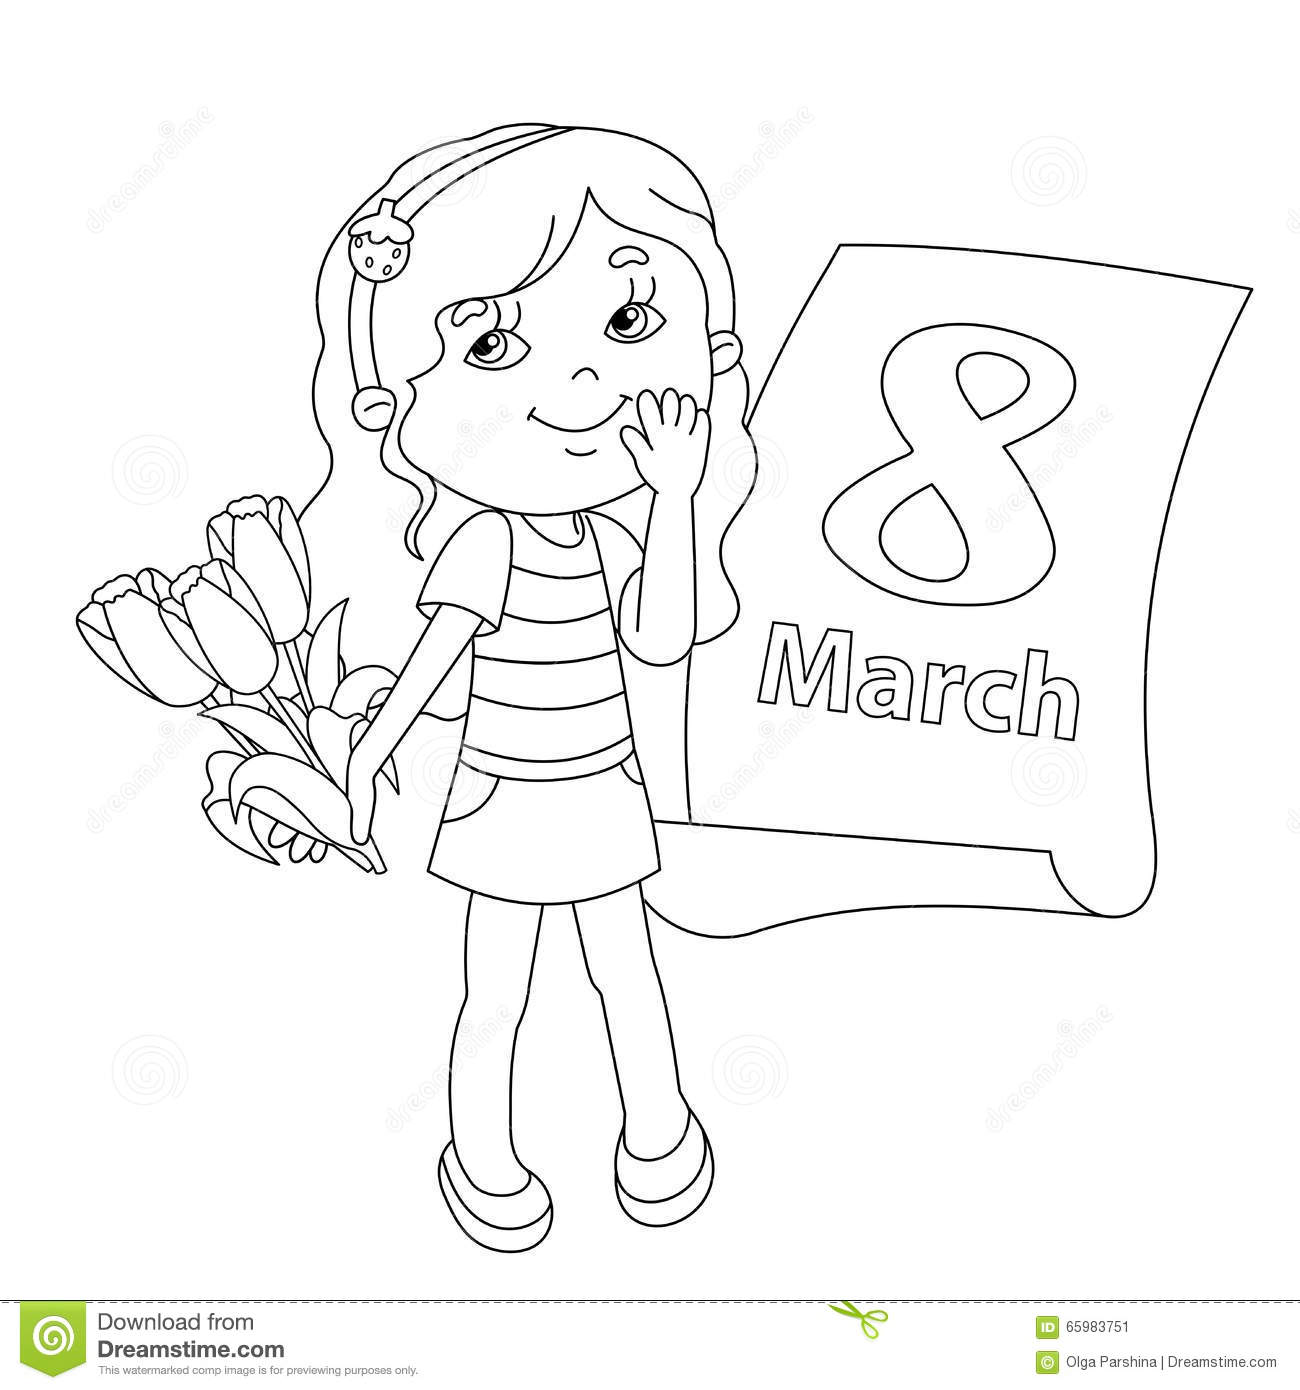 Coloring pages 8 march - Royalty Free Vector